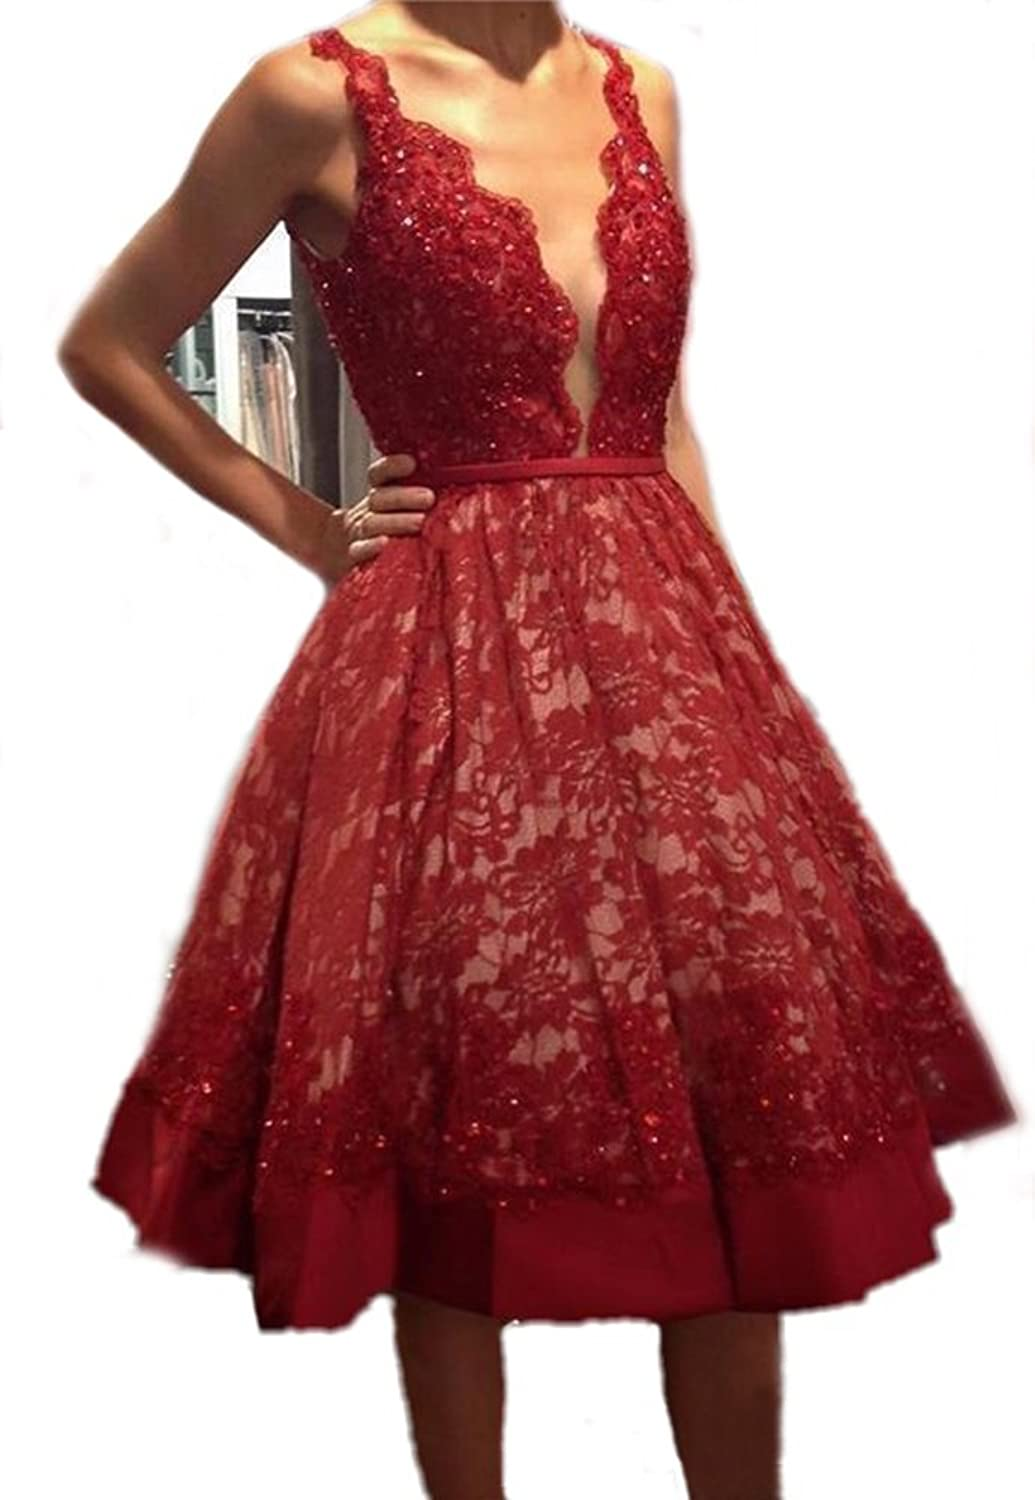 Chenghouse Short Prom Dresses 2017 Tea Length Lace Homecoming Dresses